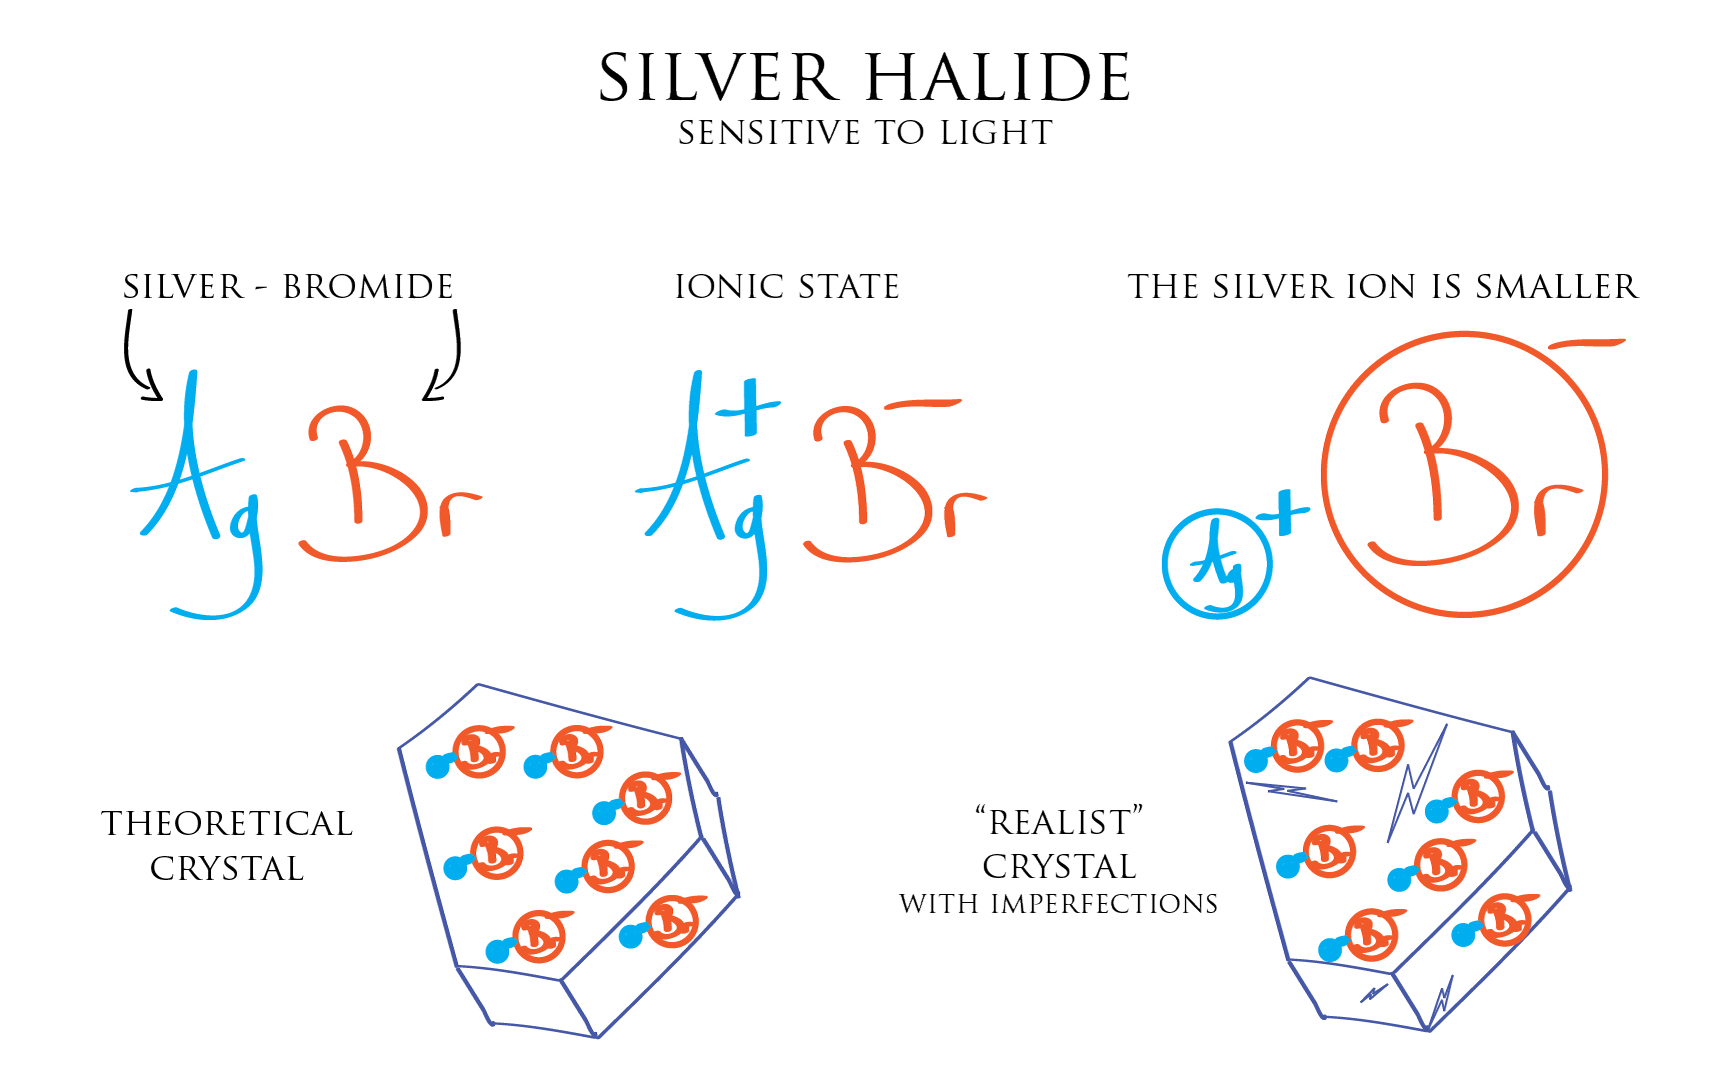 Illustrate silver halide